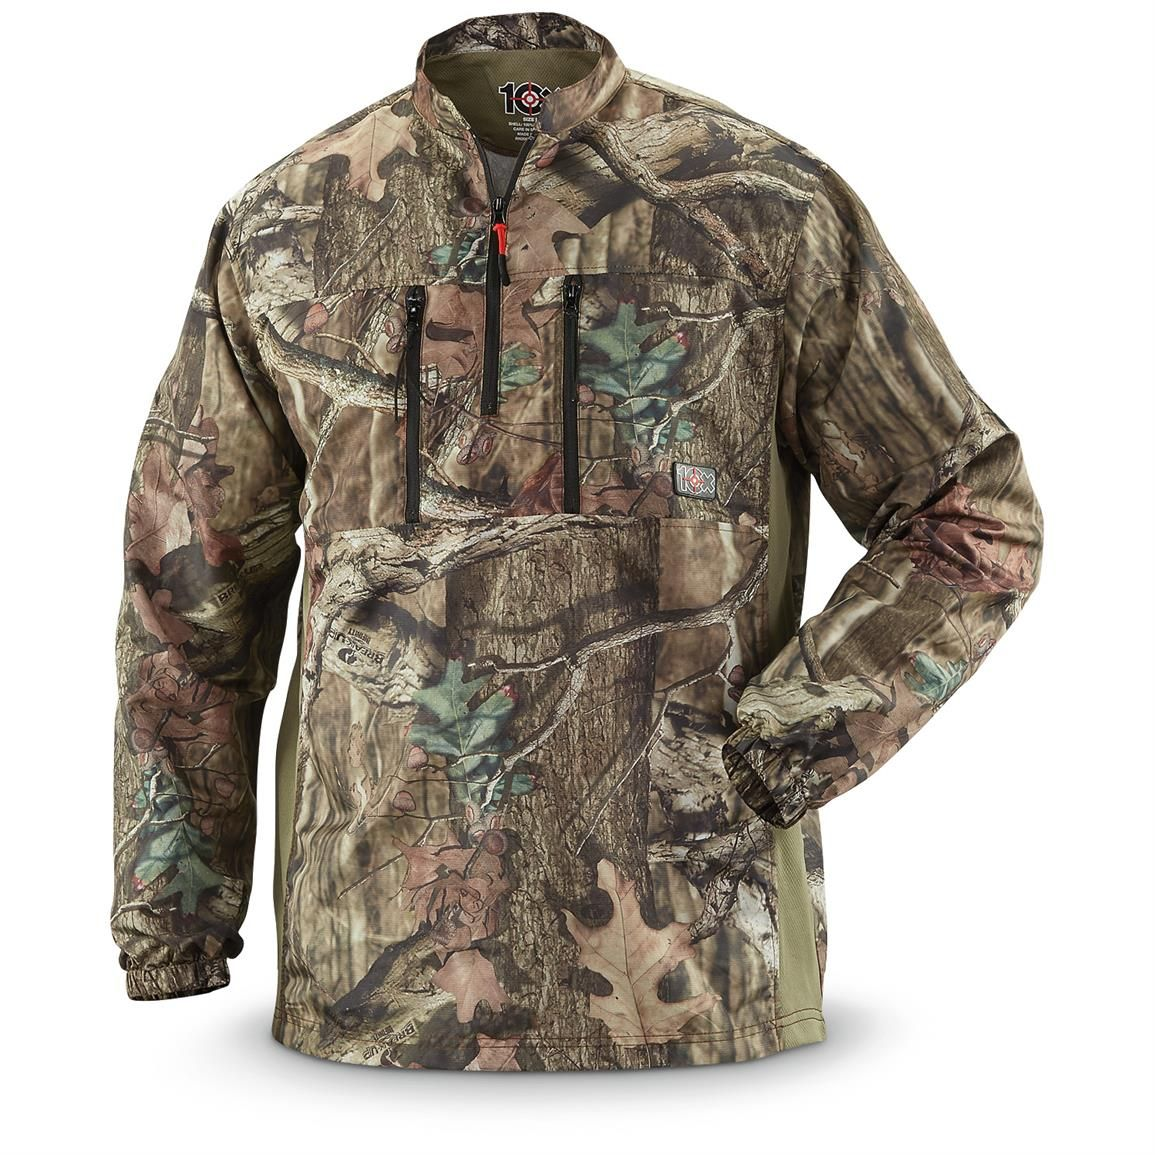 0dcd2d91ea07a Walls 10X Men's Ultra-Lite Camo Pullover. Quiet, quick-drying and  breathable. Perfect for the field... and perfect for your budget at this  close-Out price!